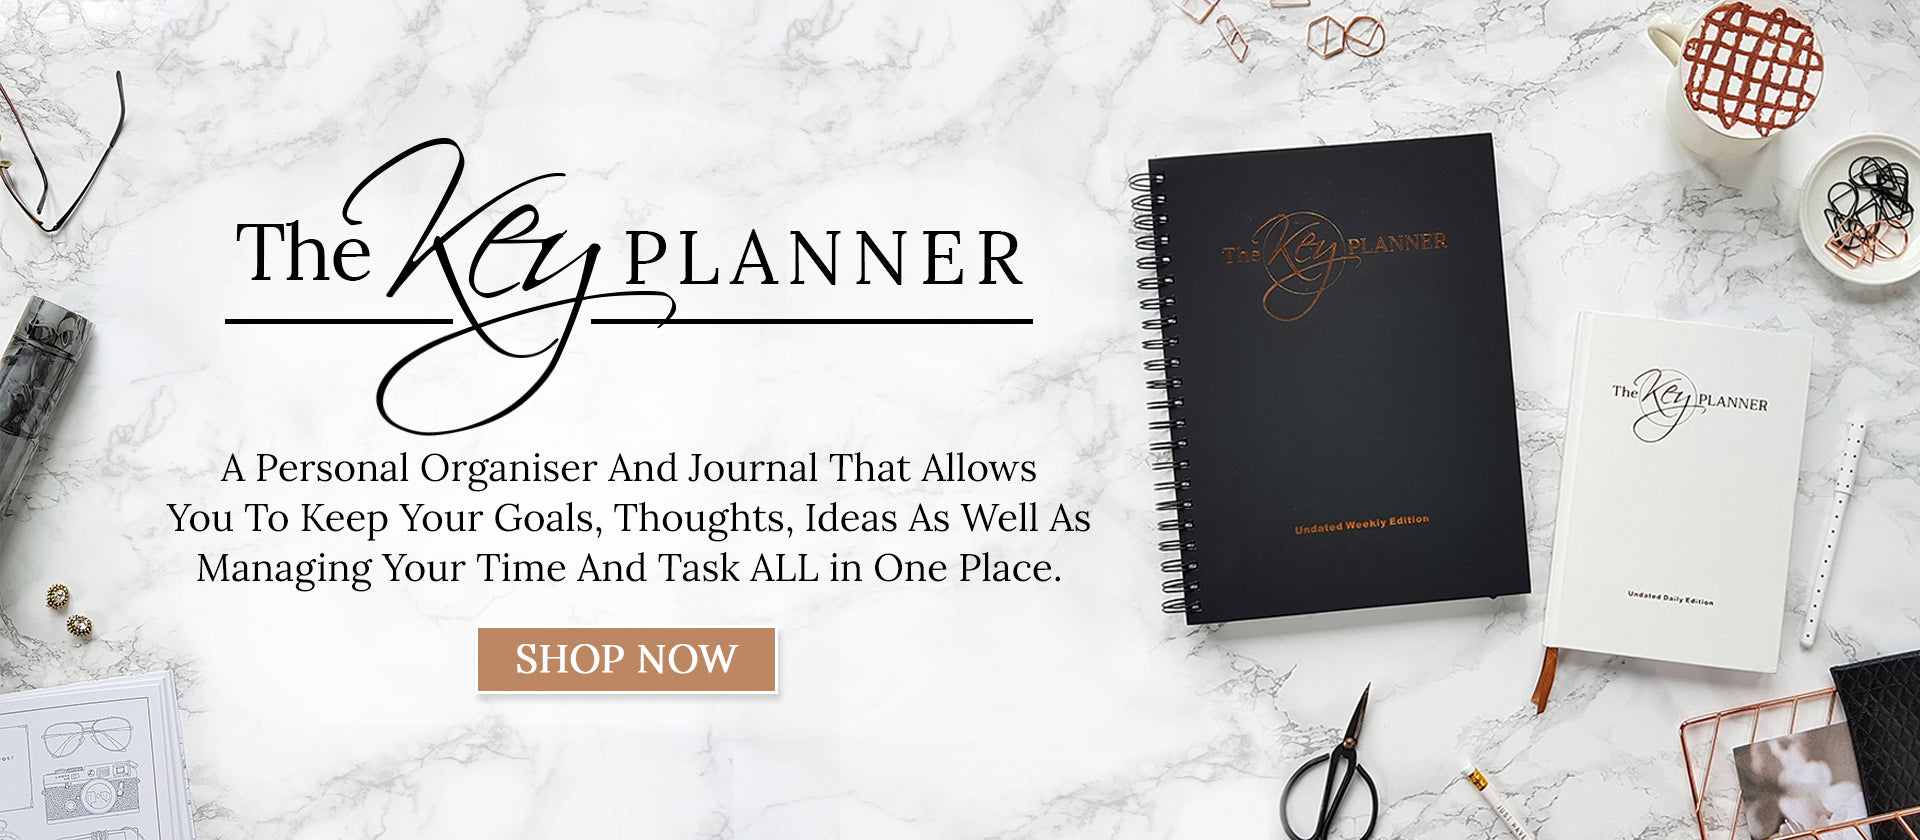 The Key Planner Collection